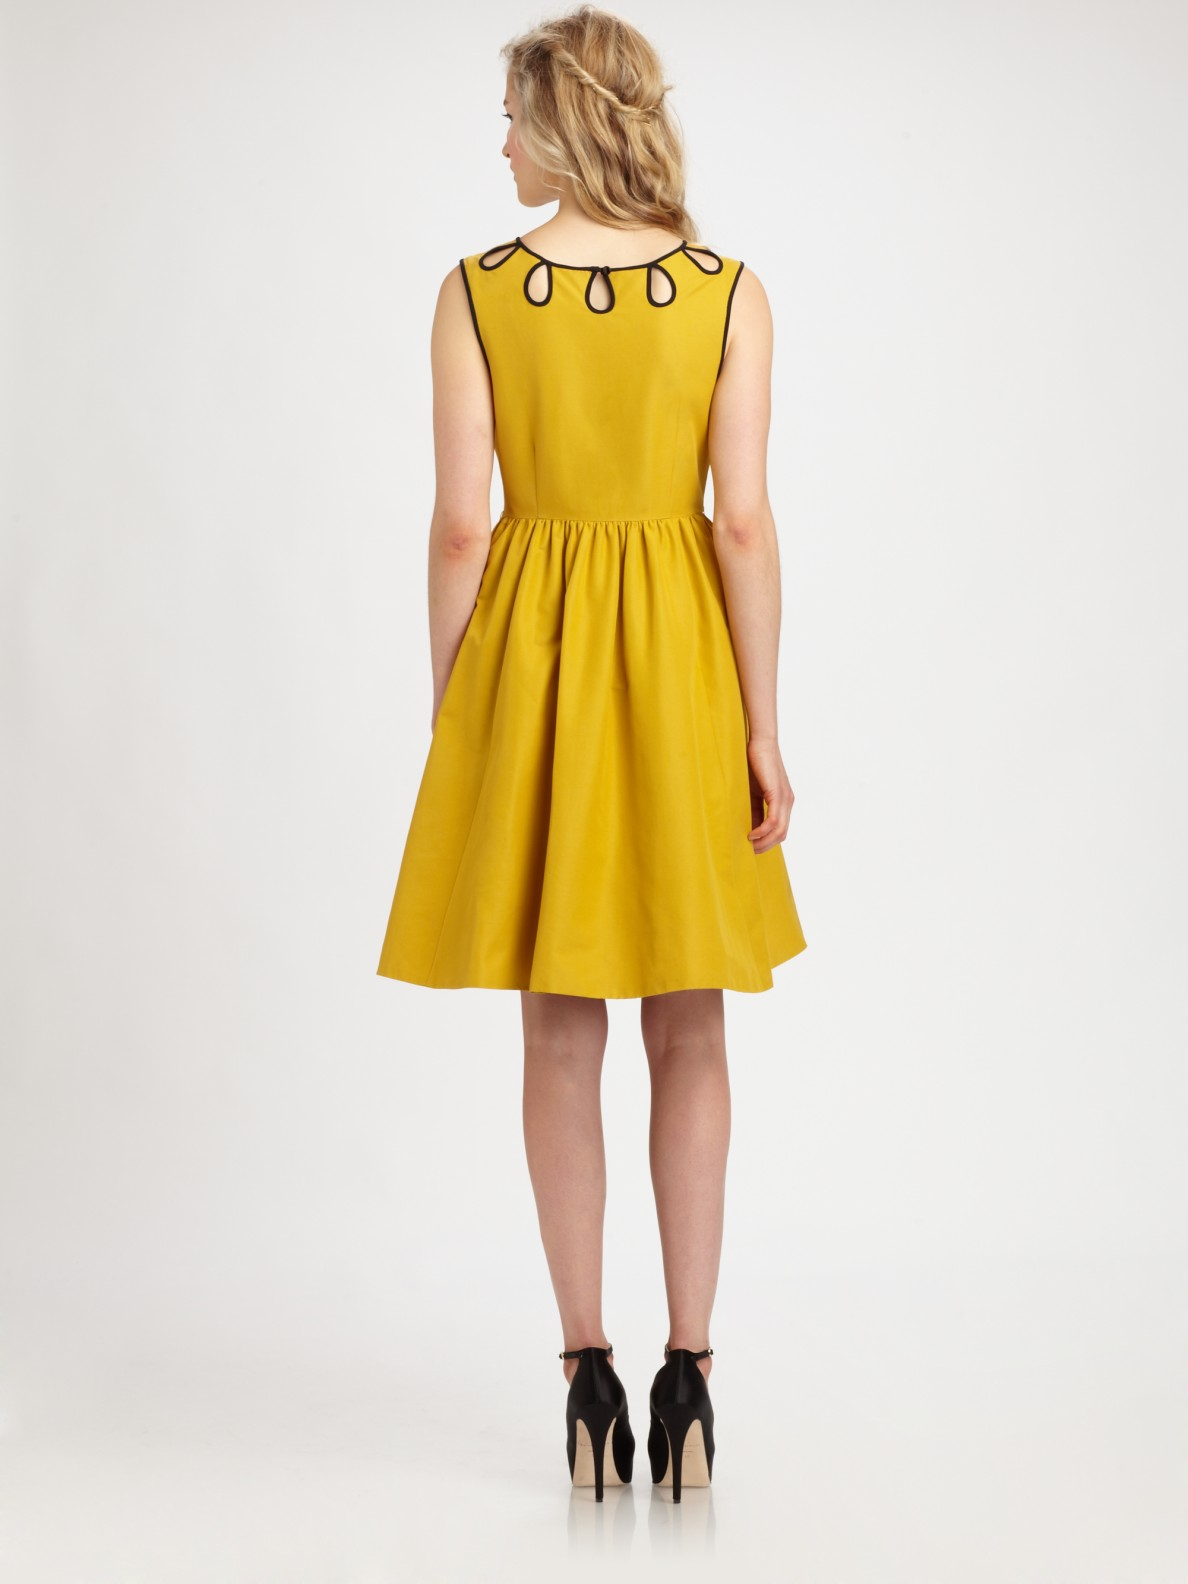 Kate Spade Rainey Dress In Yellow Lyst